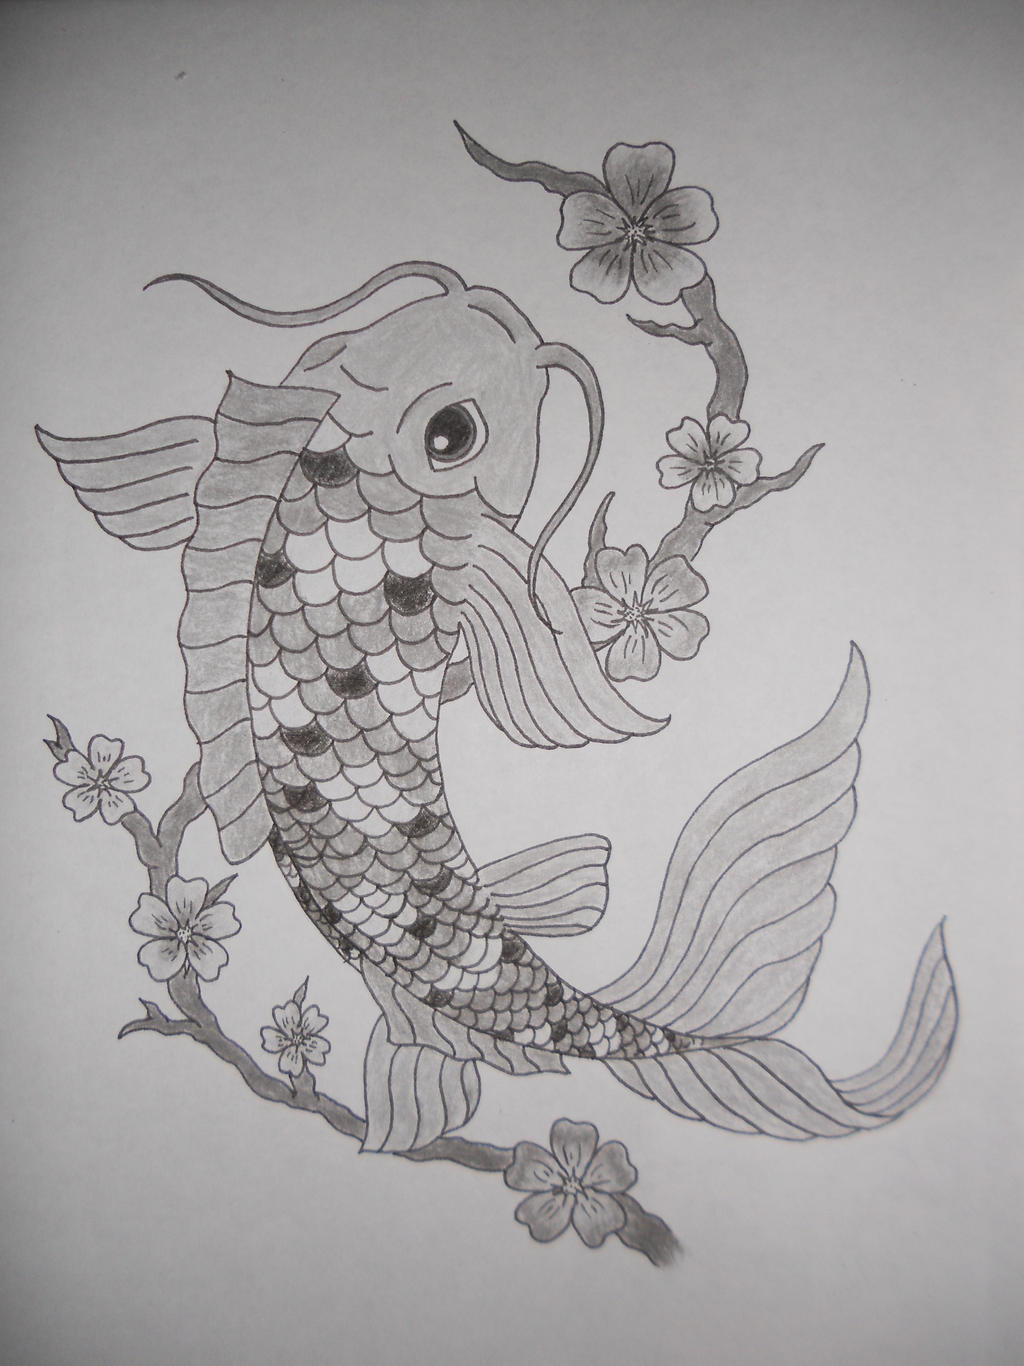 Koi fish black and white by crazy skull on deviantart for Black and white koi fish